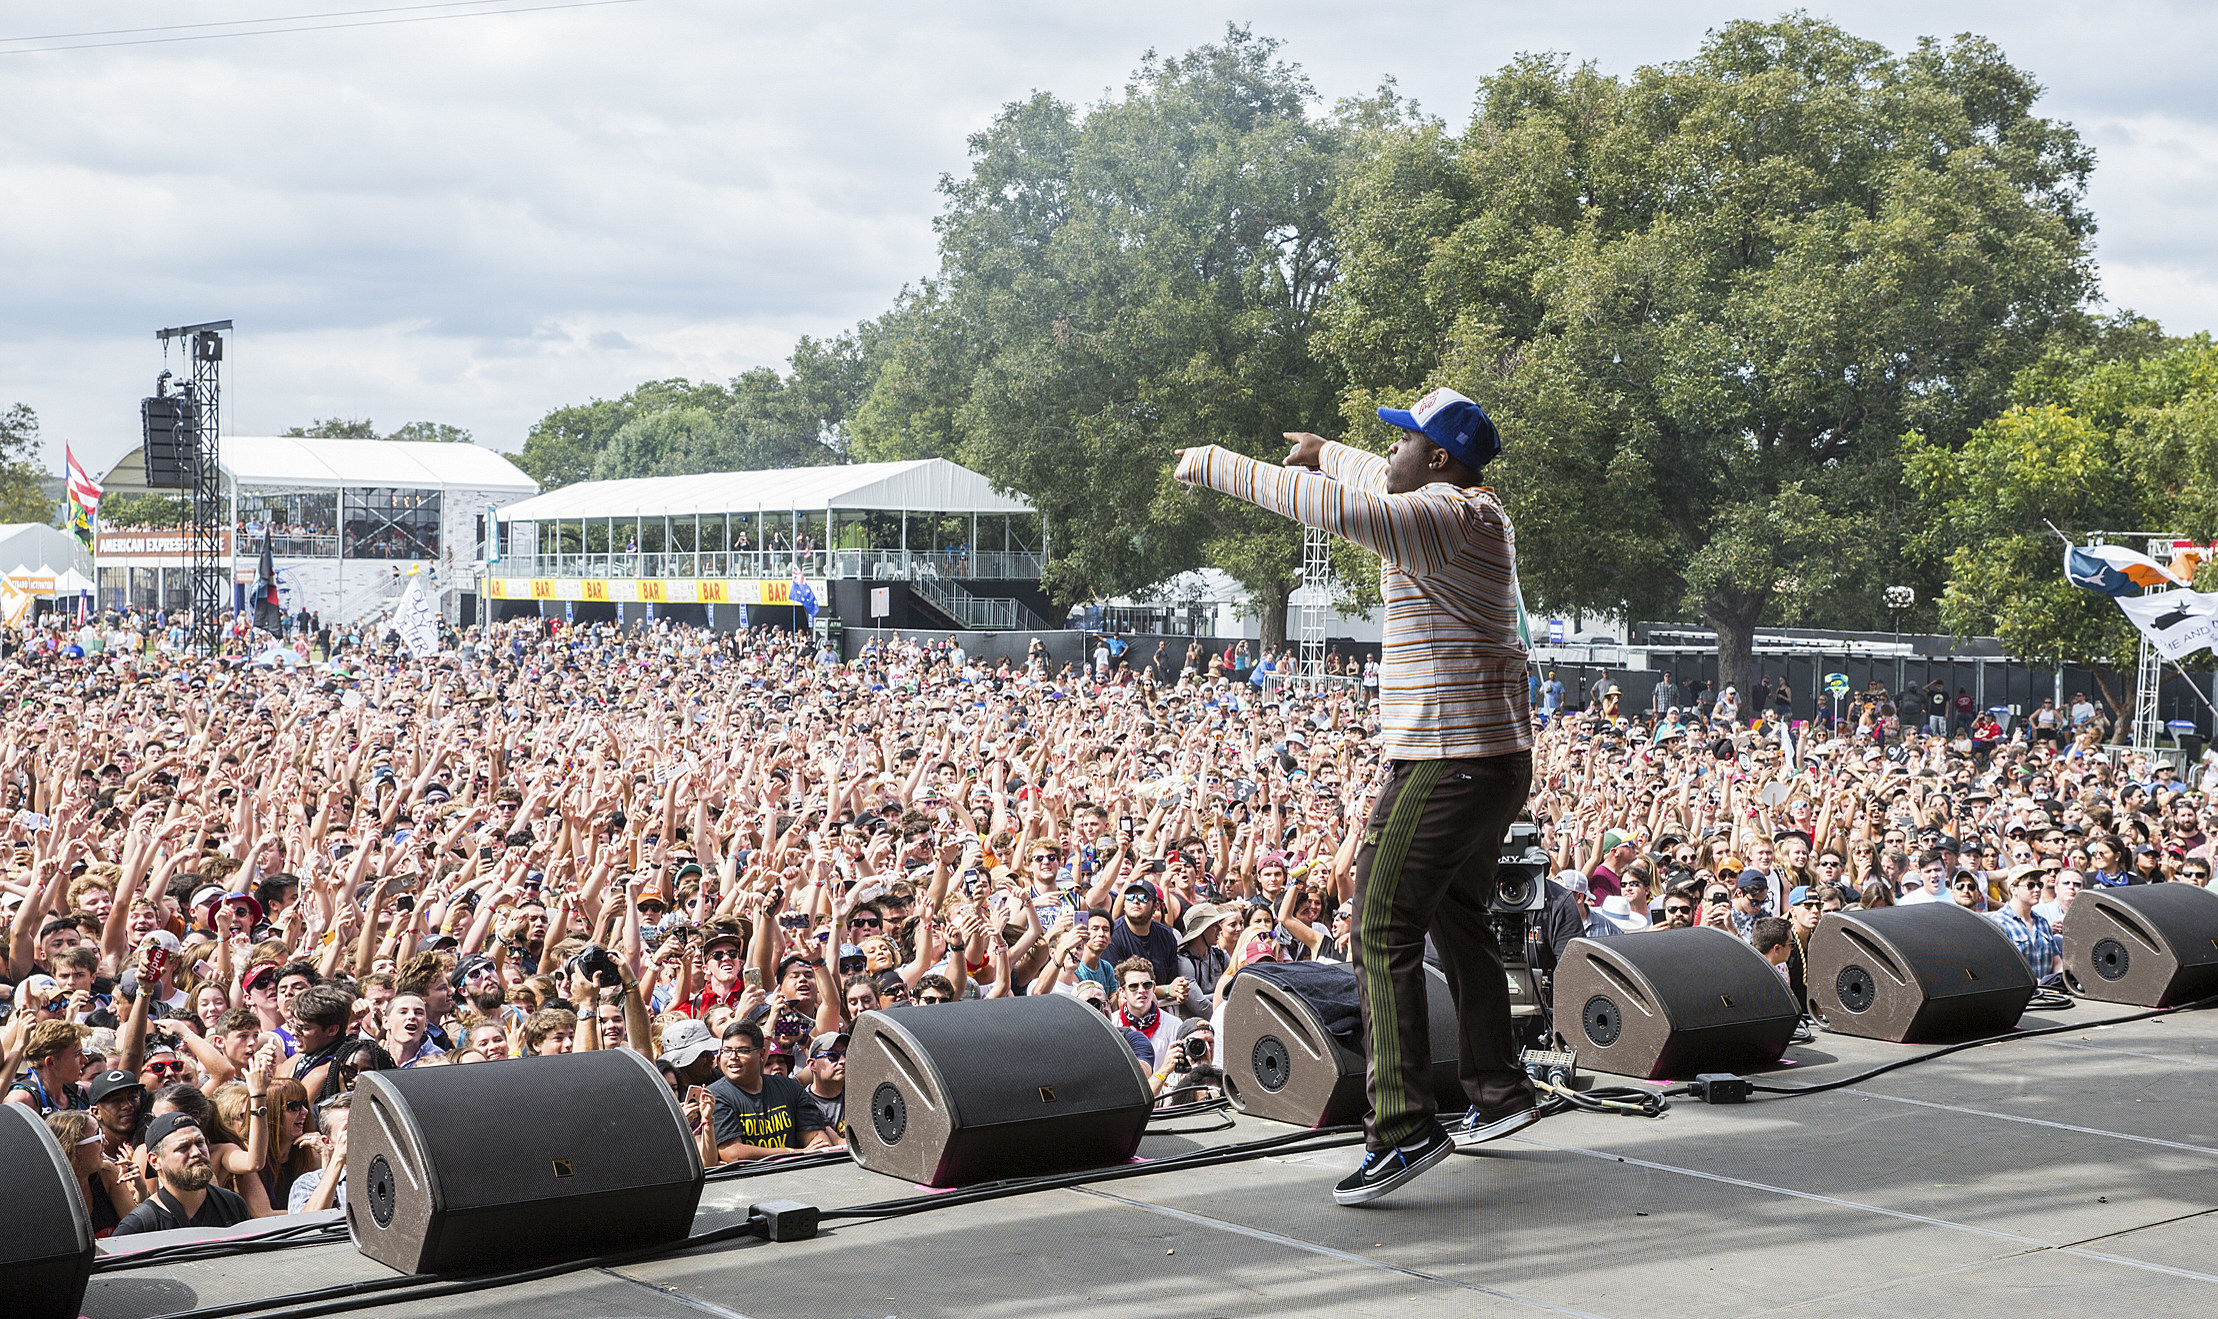 Photo by CANDICE LAWLER for ACL